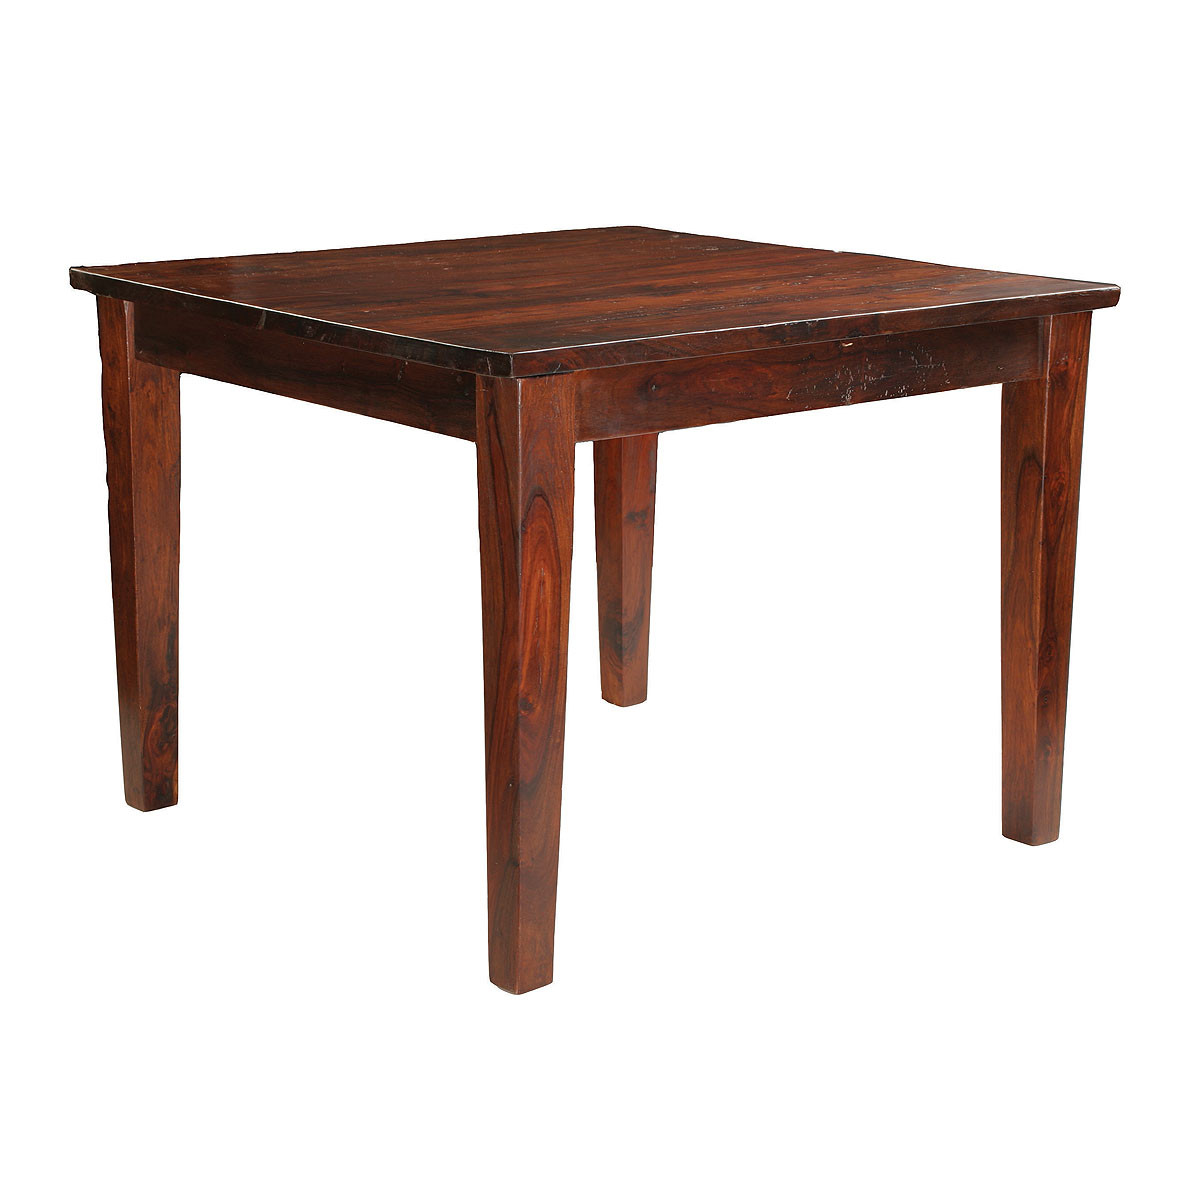 Square Dining Table 40 39 39 Solid Wood Top Rustic Kitchen Table